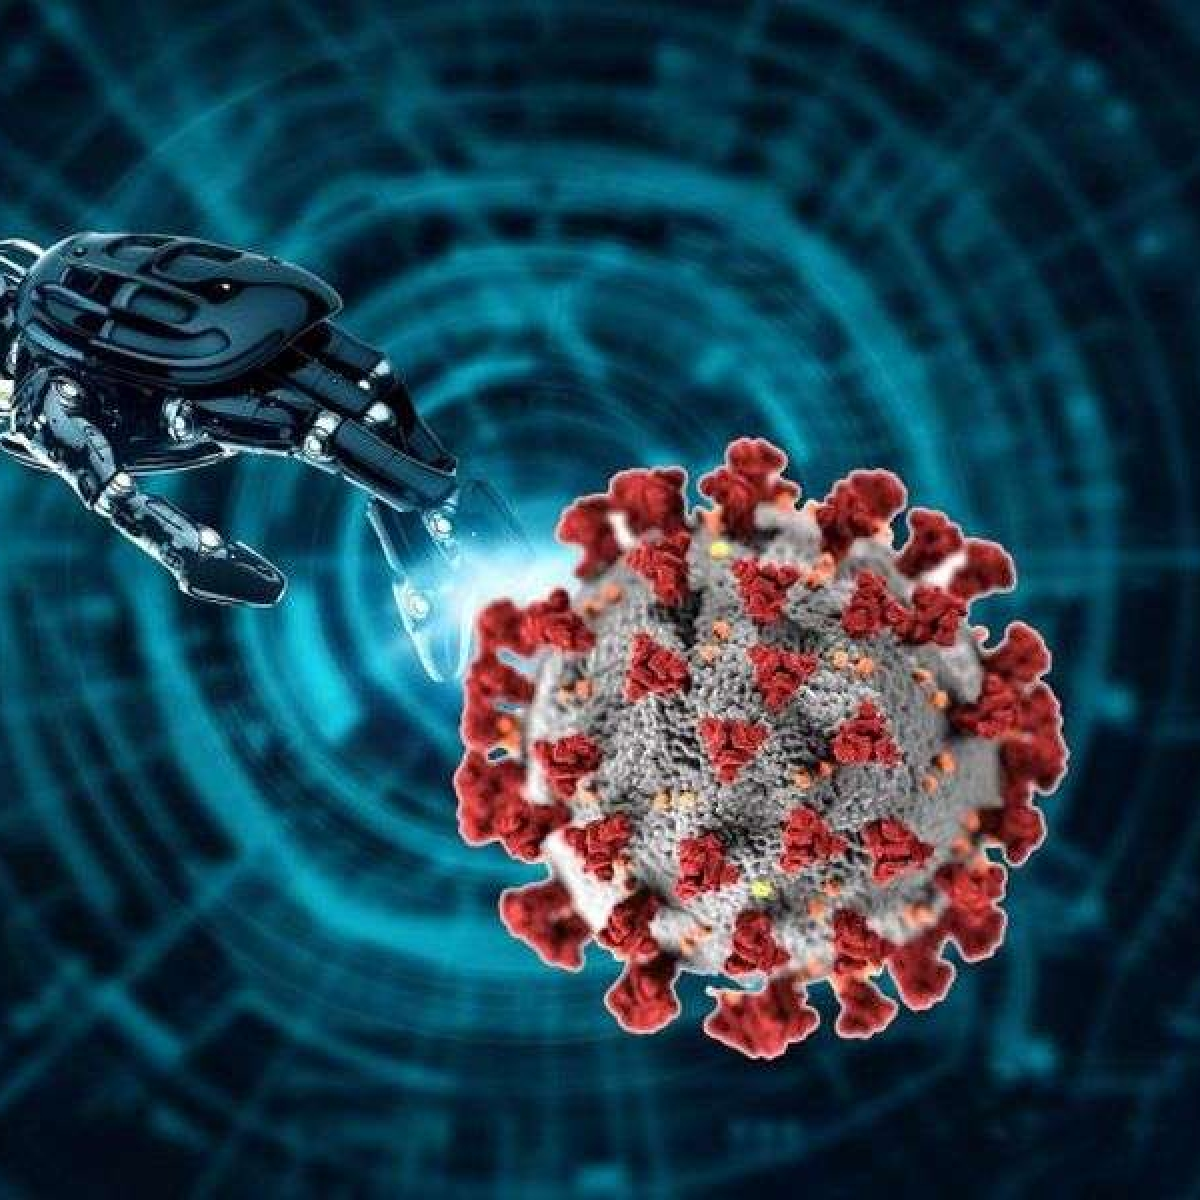 Scientists use AI to identify hundreds of COVID-19 drug candidates